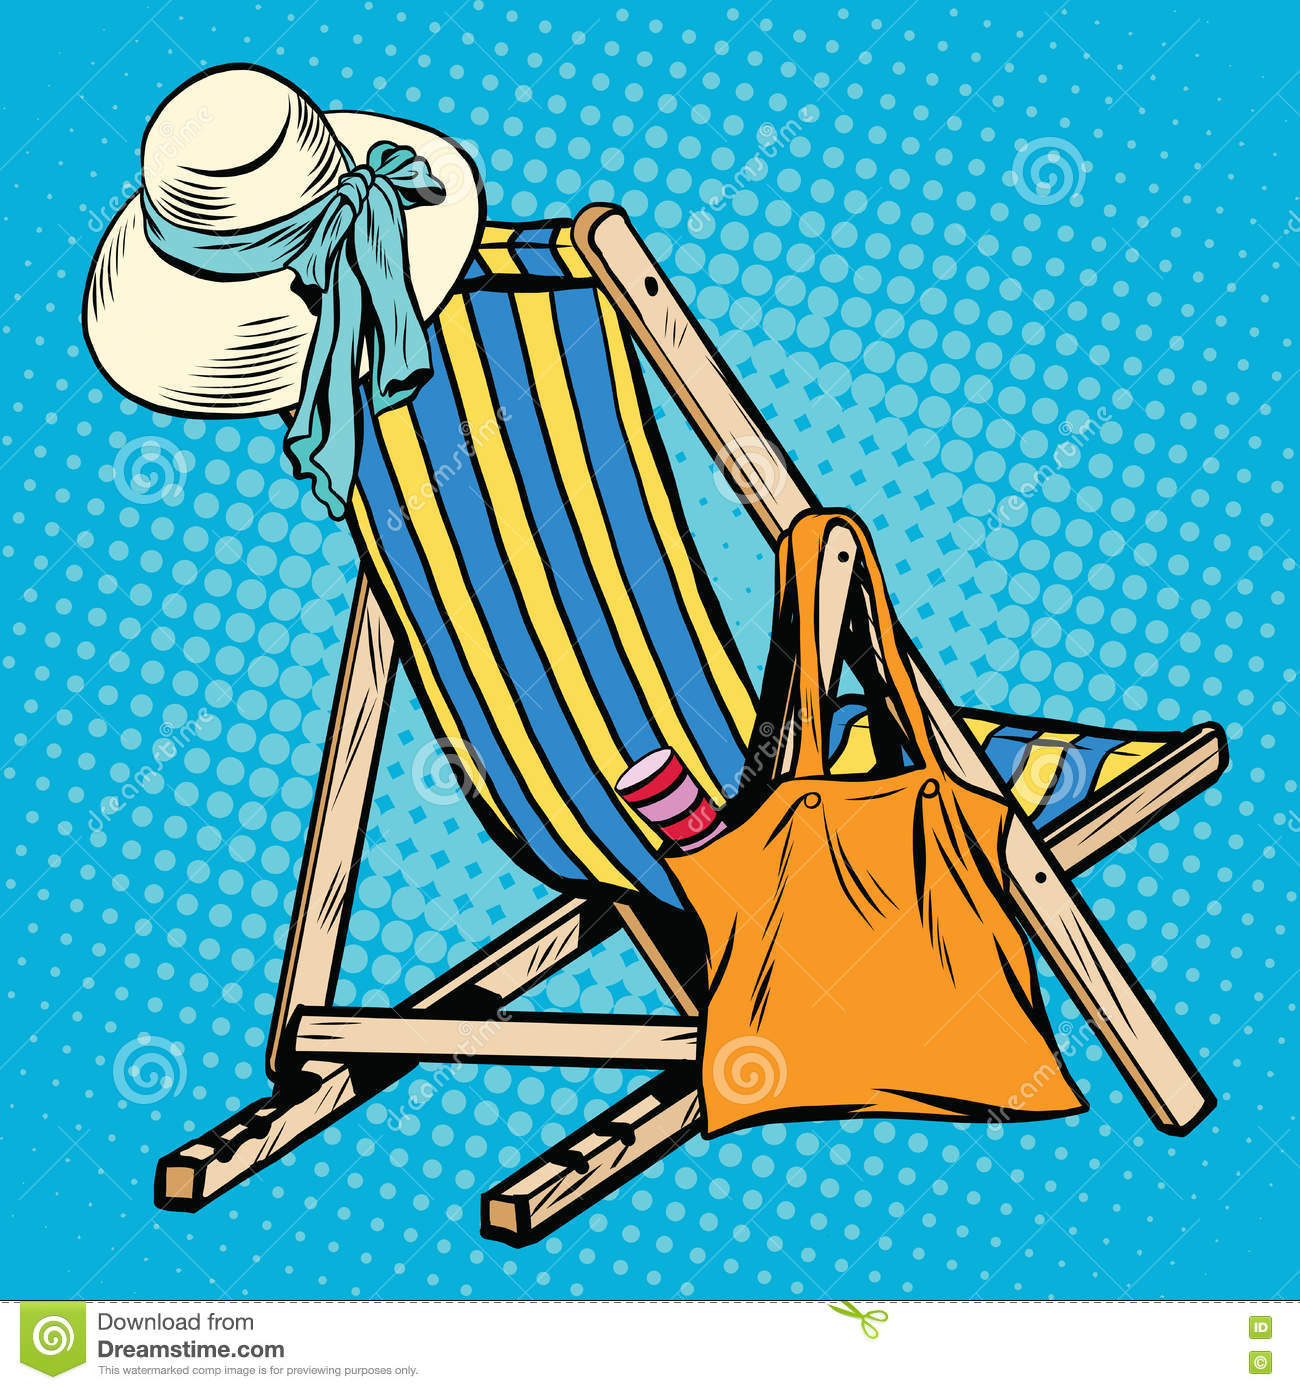 Deck Chair With Beach Things Women Stock Vector - Image ...